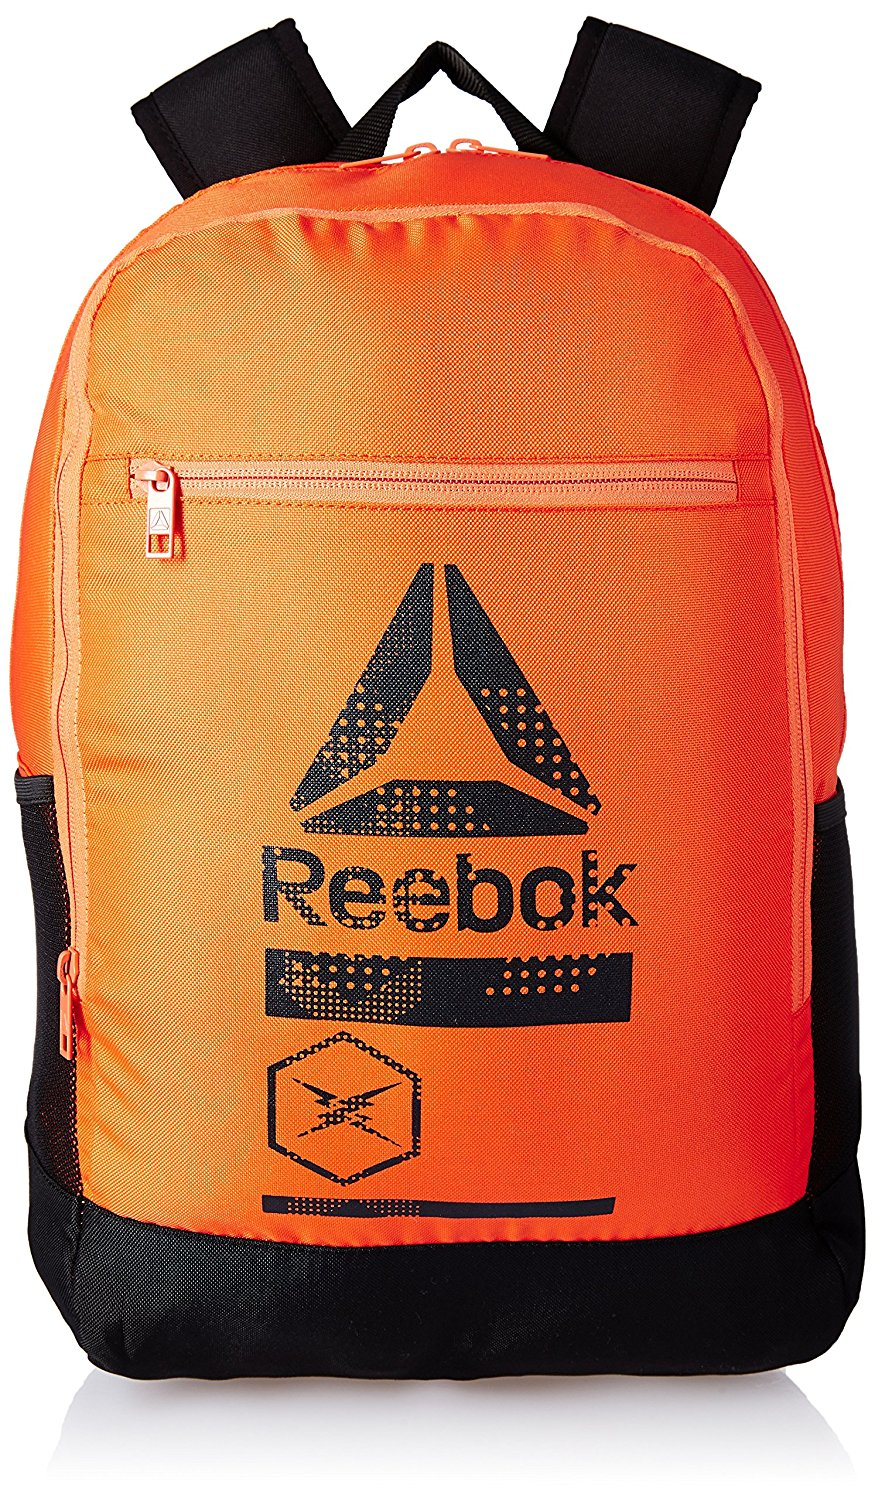 Amazon Deal - Buy Reebok Backpacks At 70% Off Starting from Rs.426